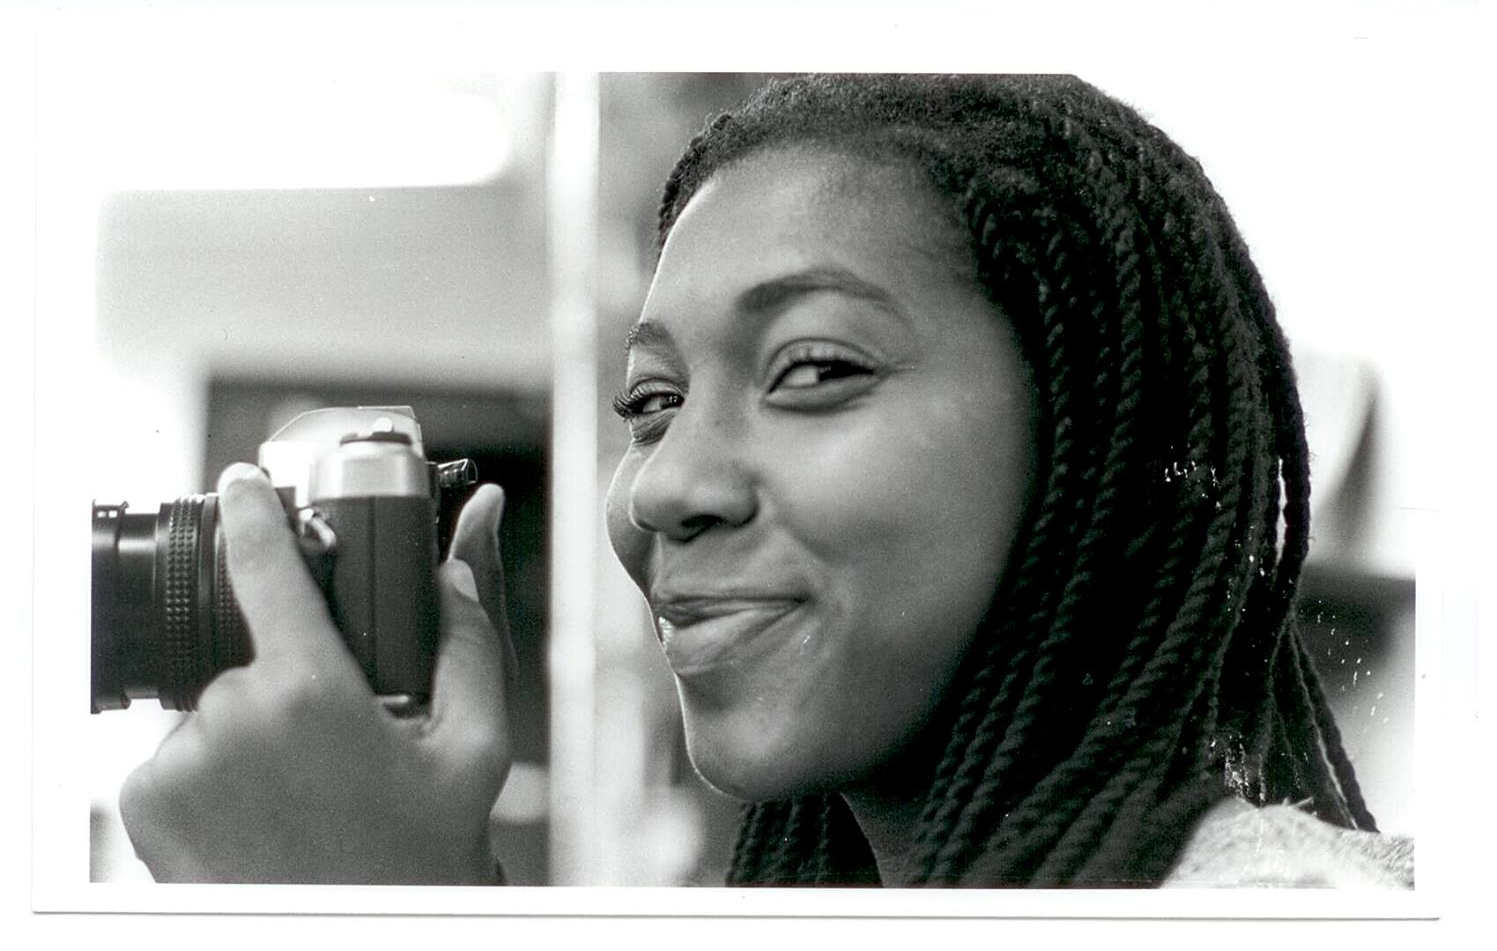 "Maya Jackson - Maya, born and raised in Richmond, VA, just graduated with a BFA in Photography + Filmmaking from VCUarts. Her work focuses on challenging photography as documentation, ""truthful"" imagery, and introspection through self portraiture as a form of meditation. An active participant in the local arts community, she is currently a volunteer, mentor, and member of the auction and exhibition committees at Oakwood Arts. In the summer of 2018, Maya completed an artist residency at the GlogauAIR studios in Berlin, Germany, followed by an exhibition entitled Sixty-Seven. Most recently, her work appeared in the Black History Museum and Cultural Center of Virginia, in a group exhibition titled The Art of Freedom, where local Virginia artists responded to a call of what freedom means to them."